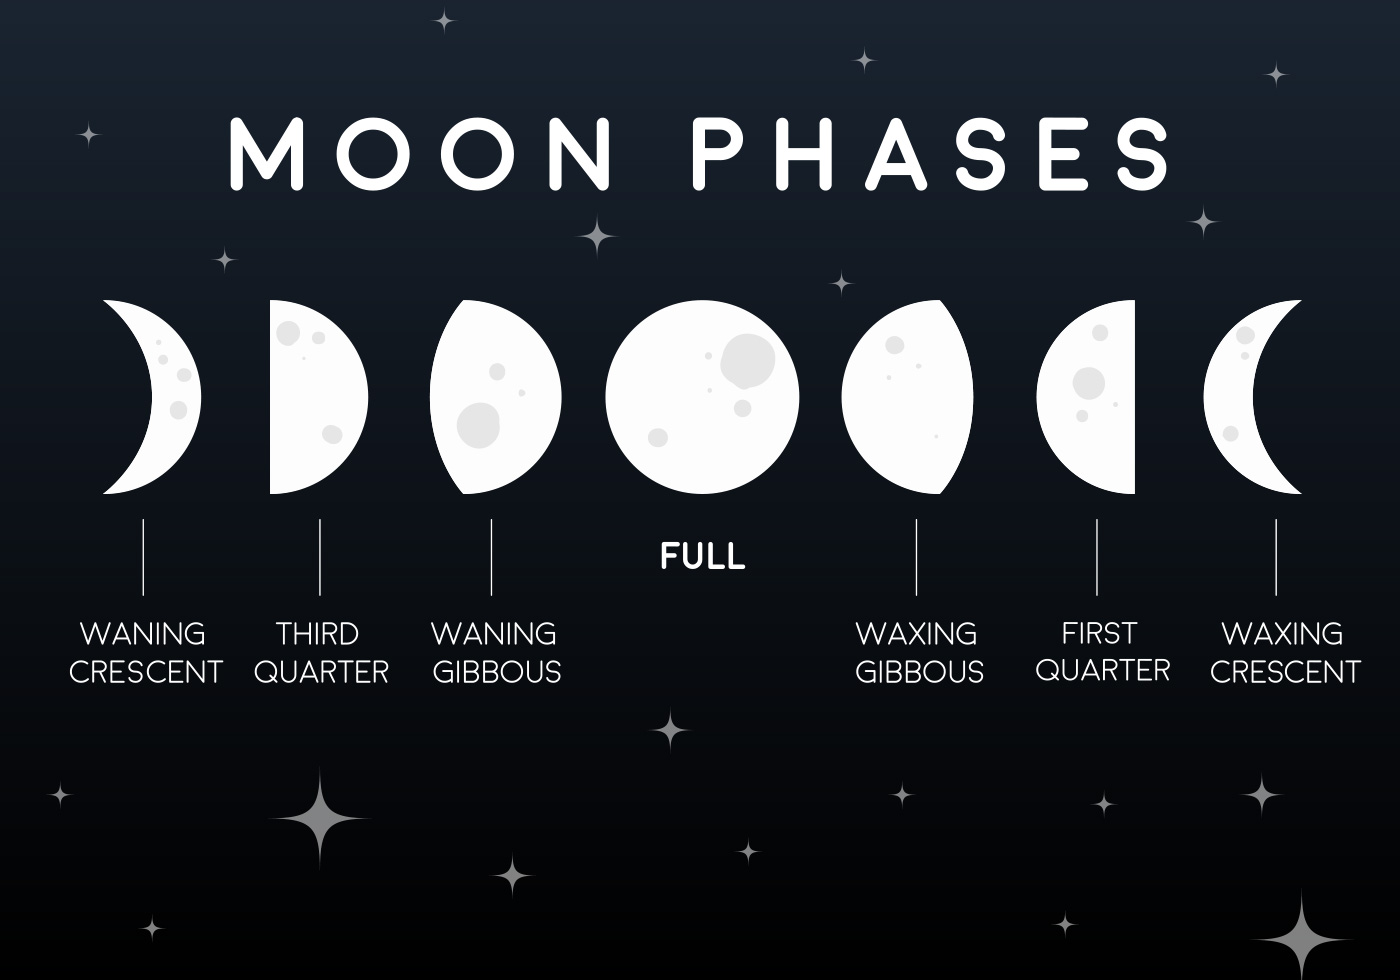 phases of moon The latest tweets from 仏陀®︎7y&9m(修正5m)&30w (@phases_of_moon) h290715(22週0日)常位胎盤早期剥離で1ℓの出血があり緊急帝王切開、 384gで次女誕生.